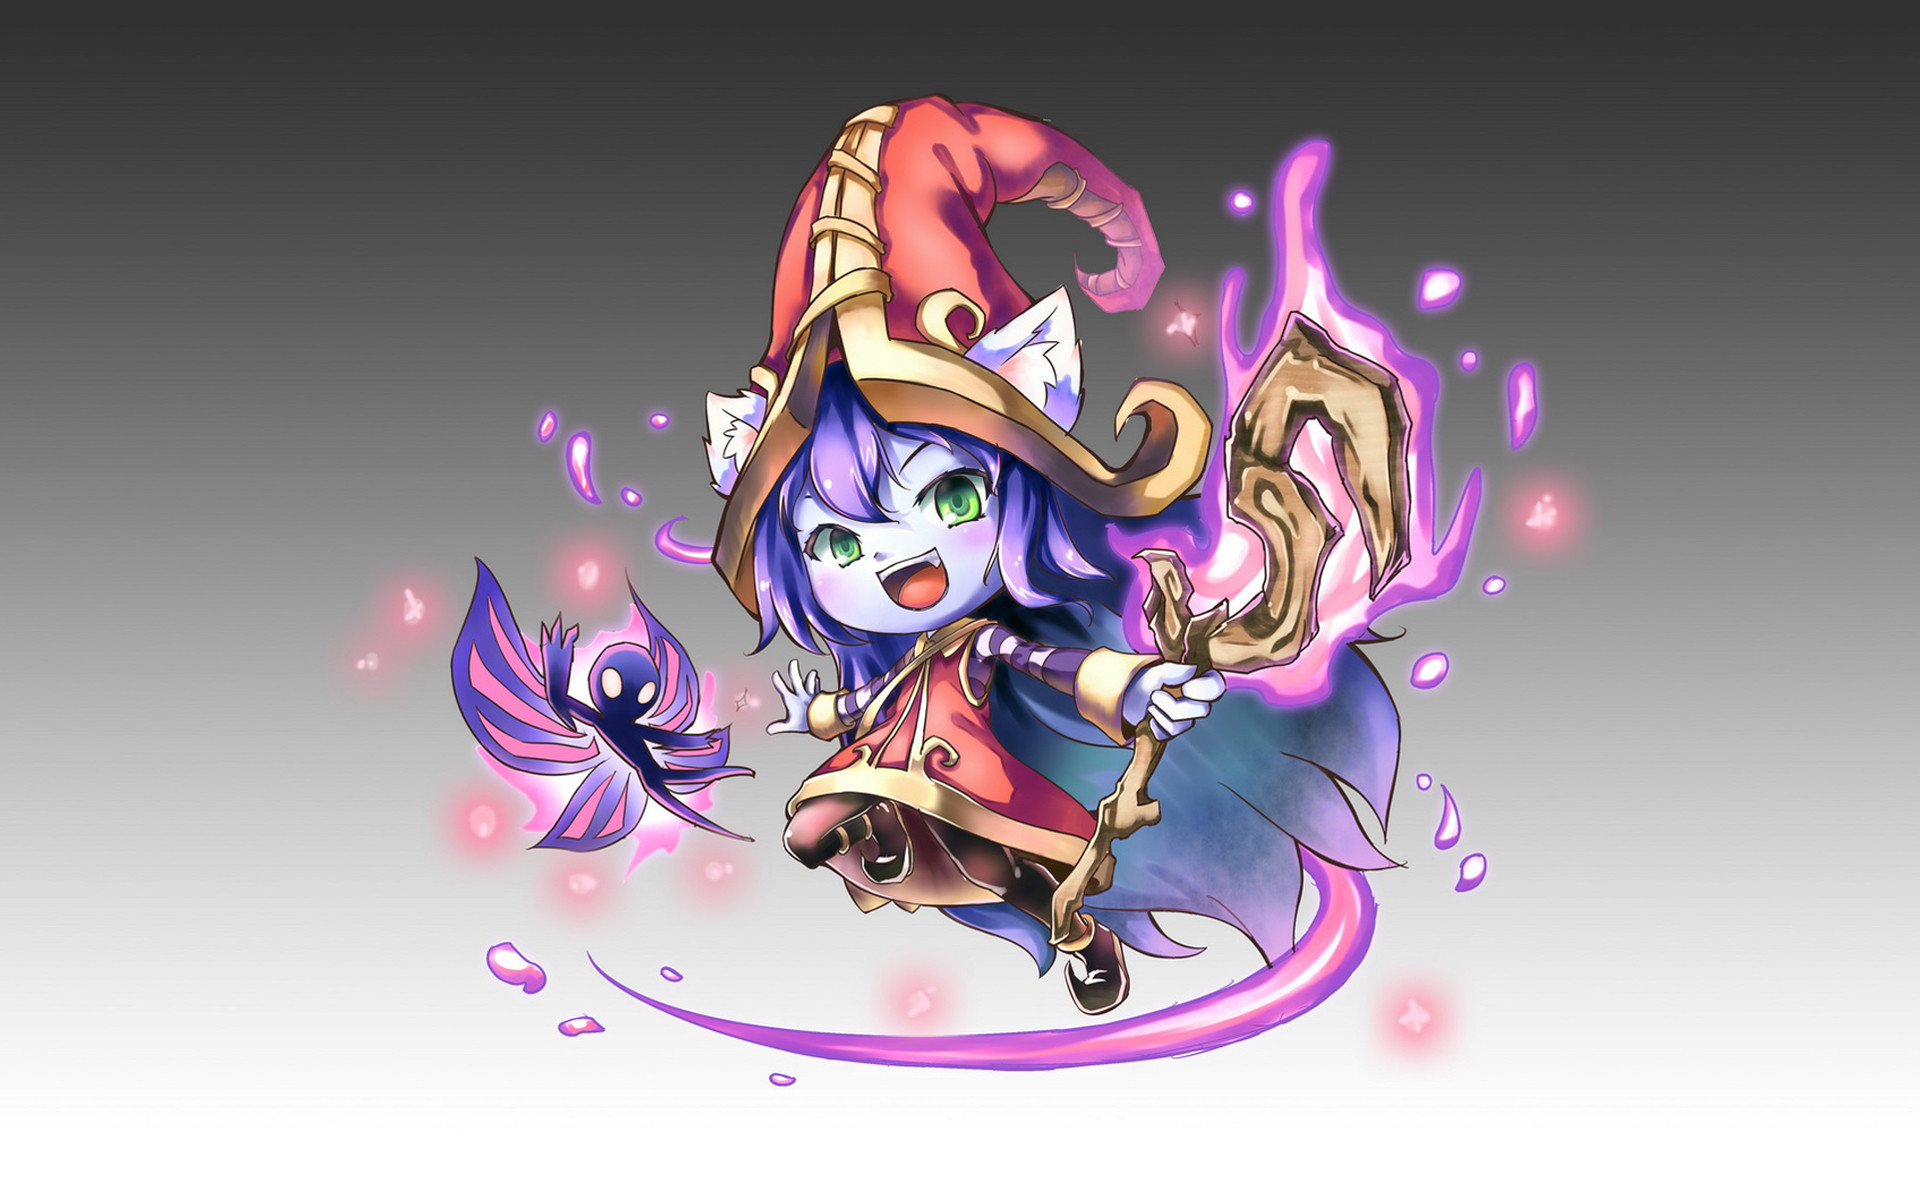 Res: 1920x1200, Chibi Lulu wallpaper